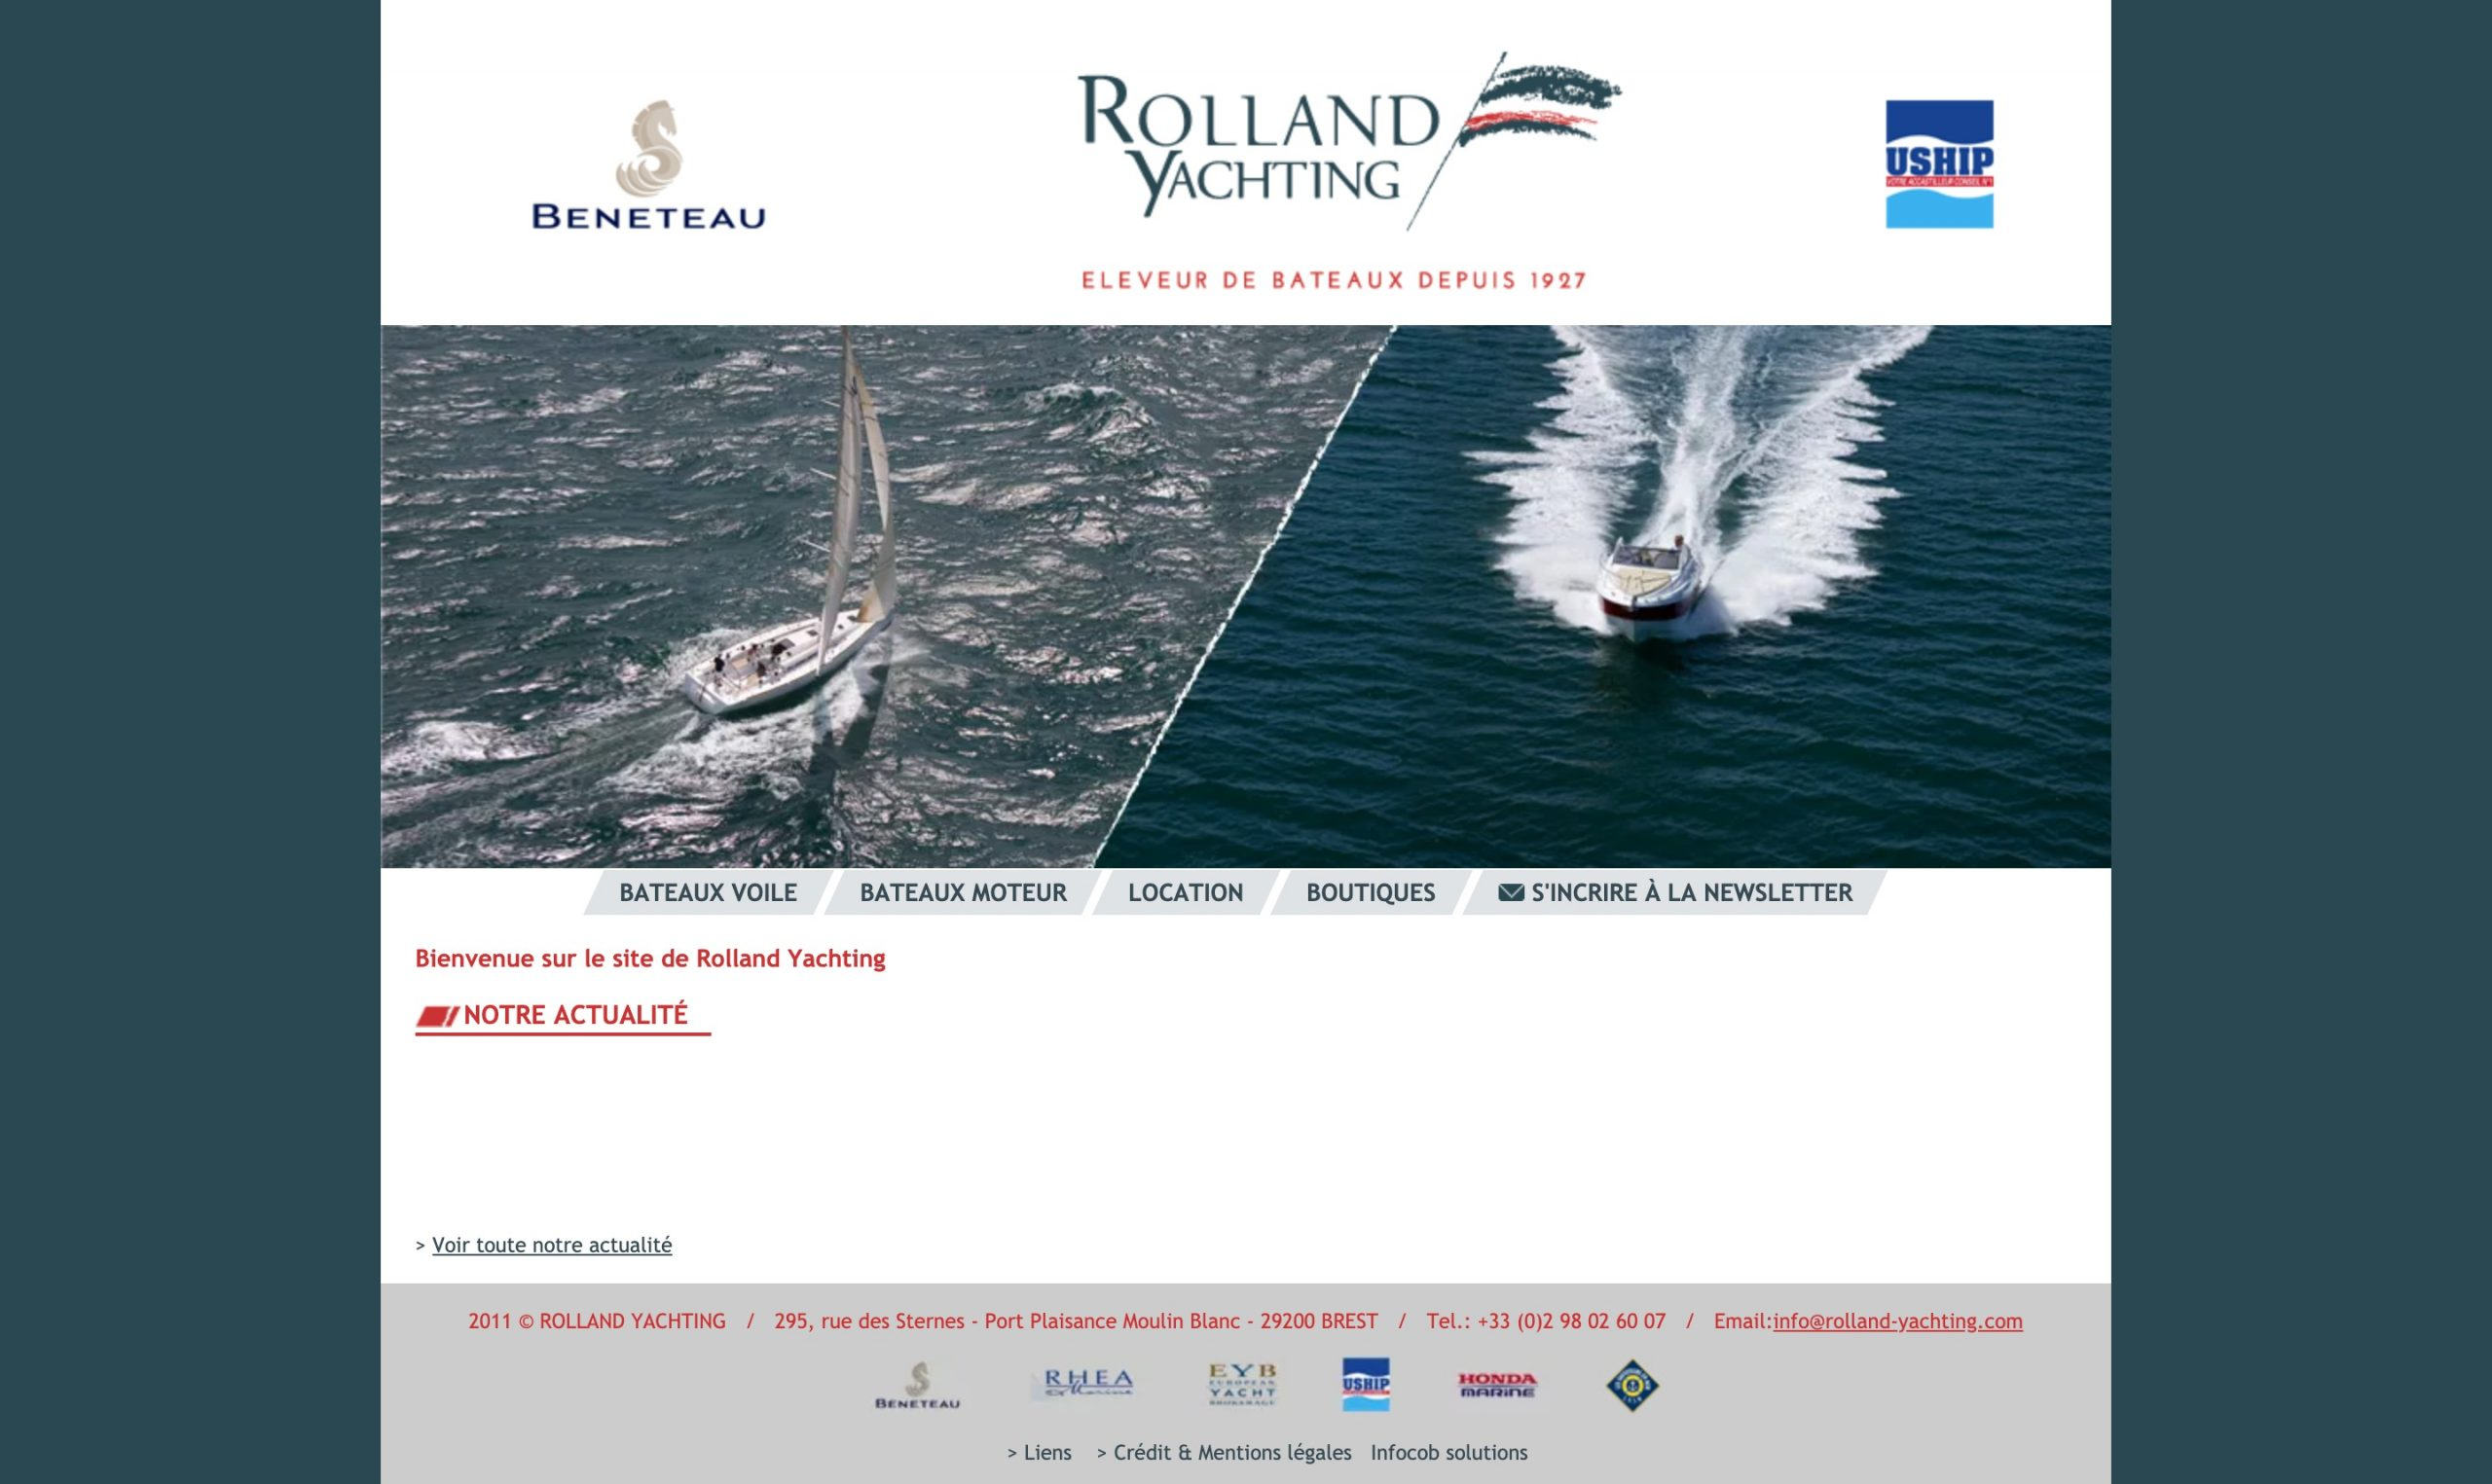 Rolland Yachting